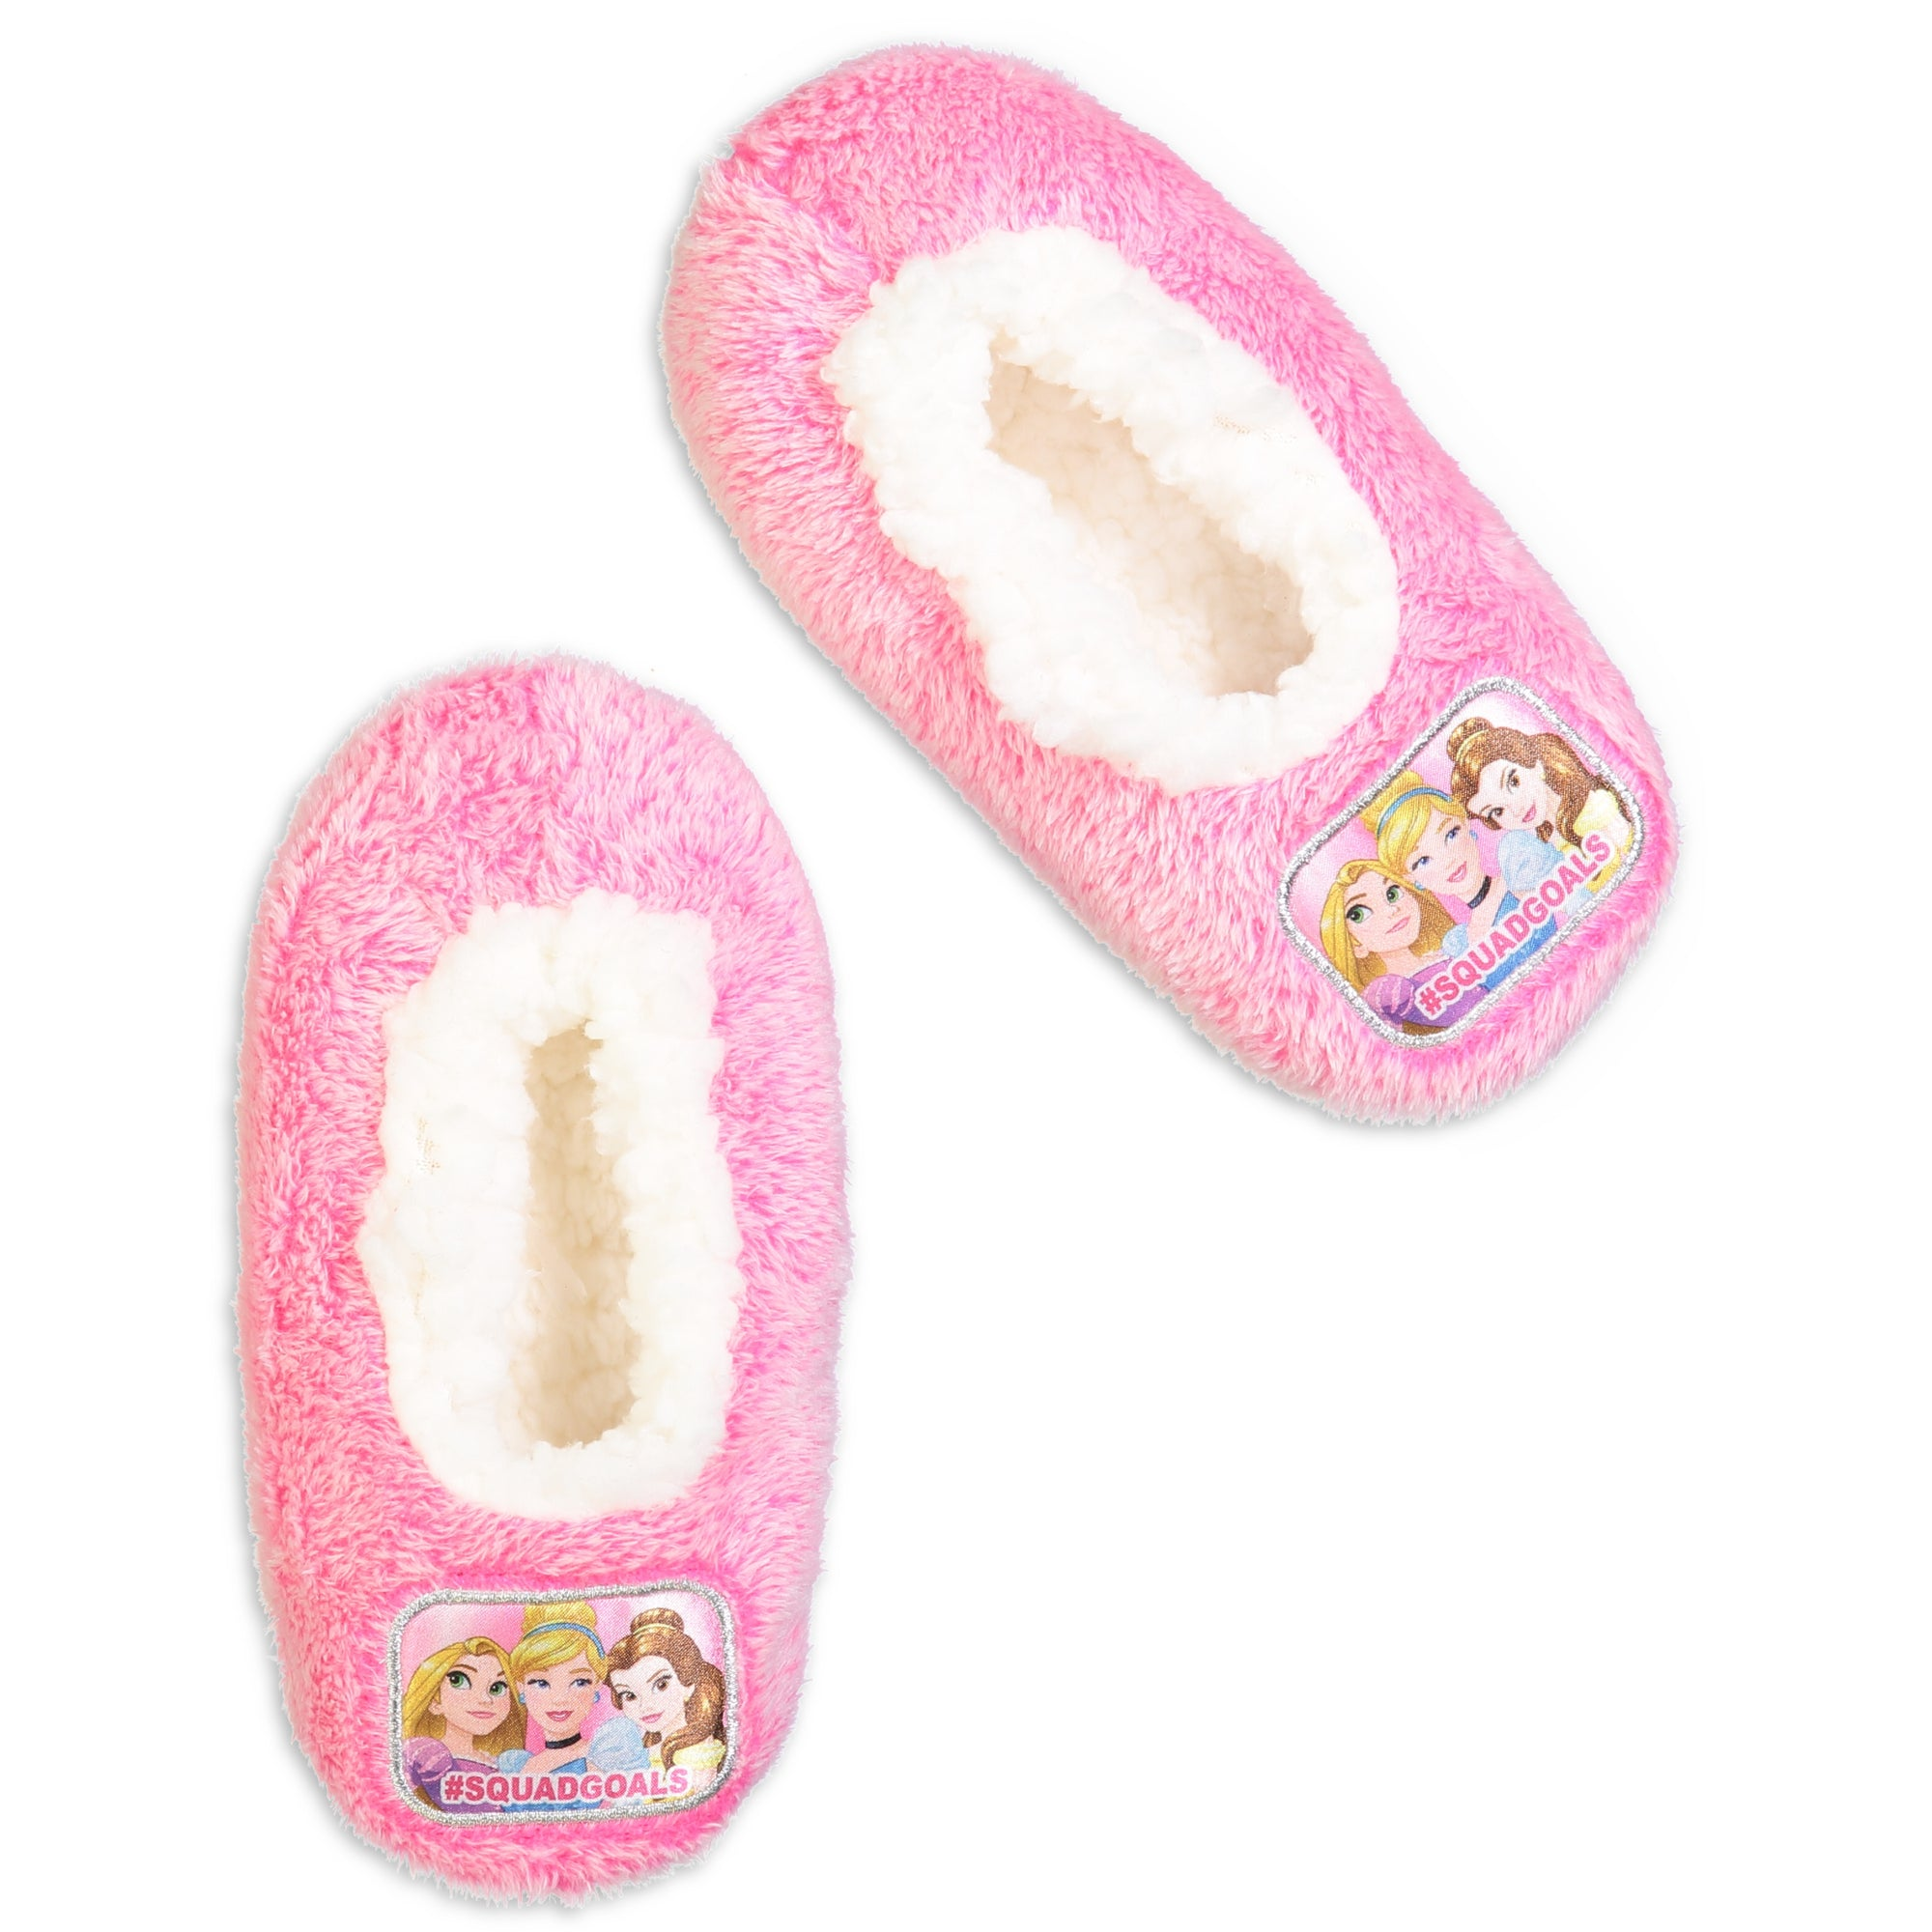 Infant/Toddler Disney Princess #SQUADGOALS Slipper Sock